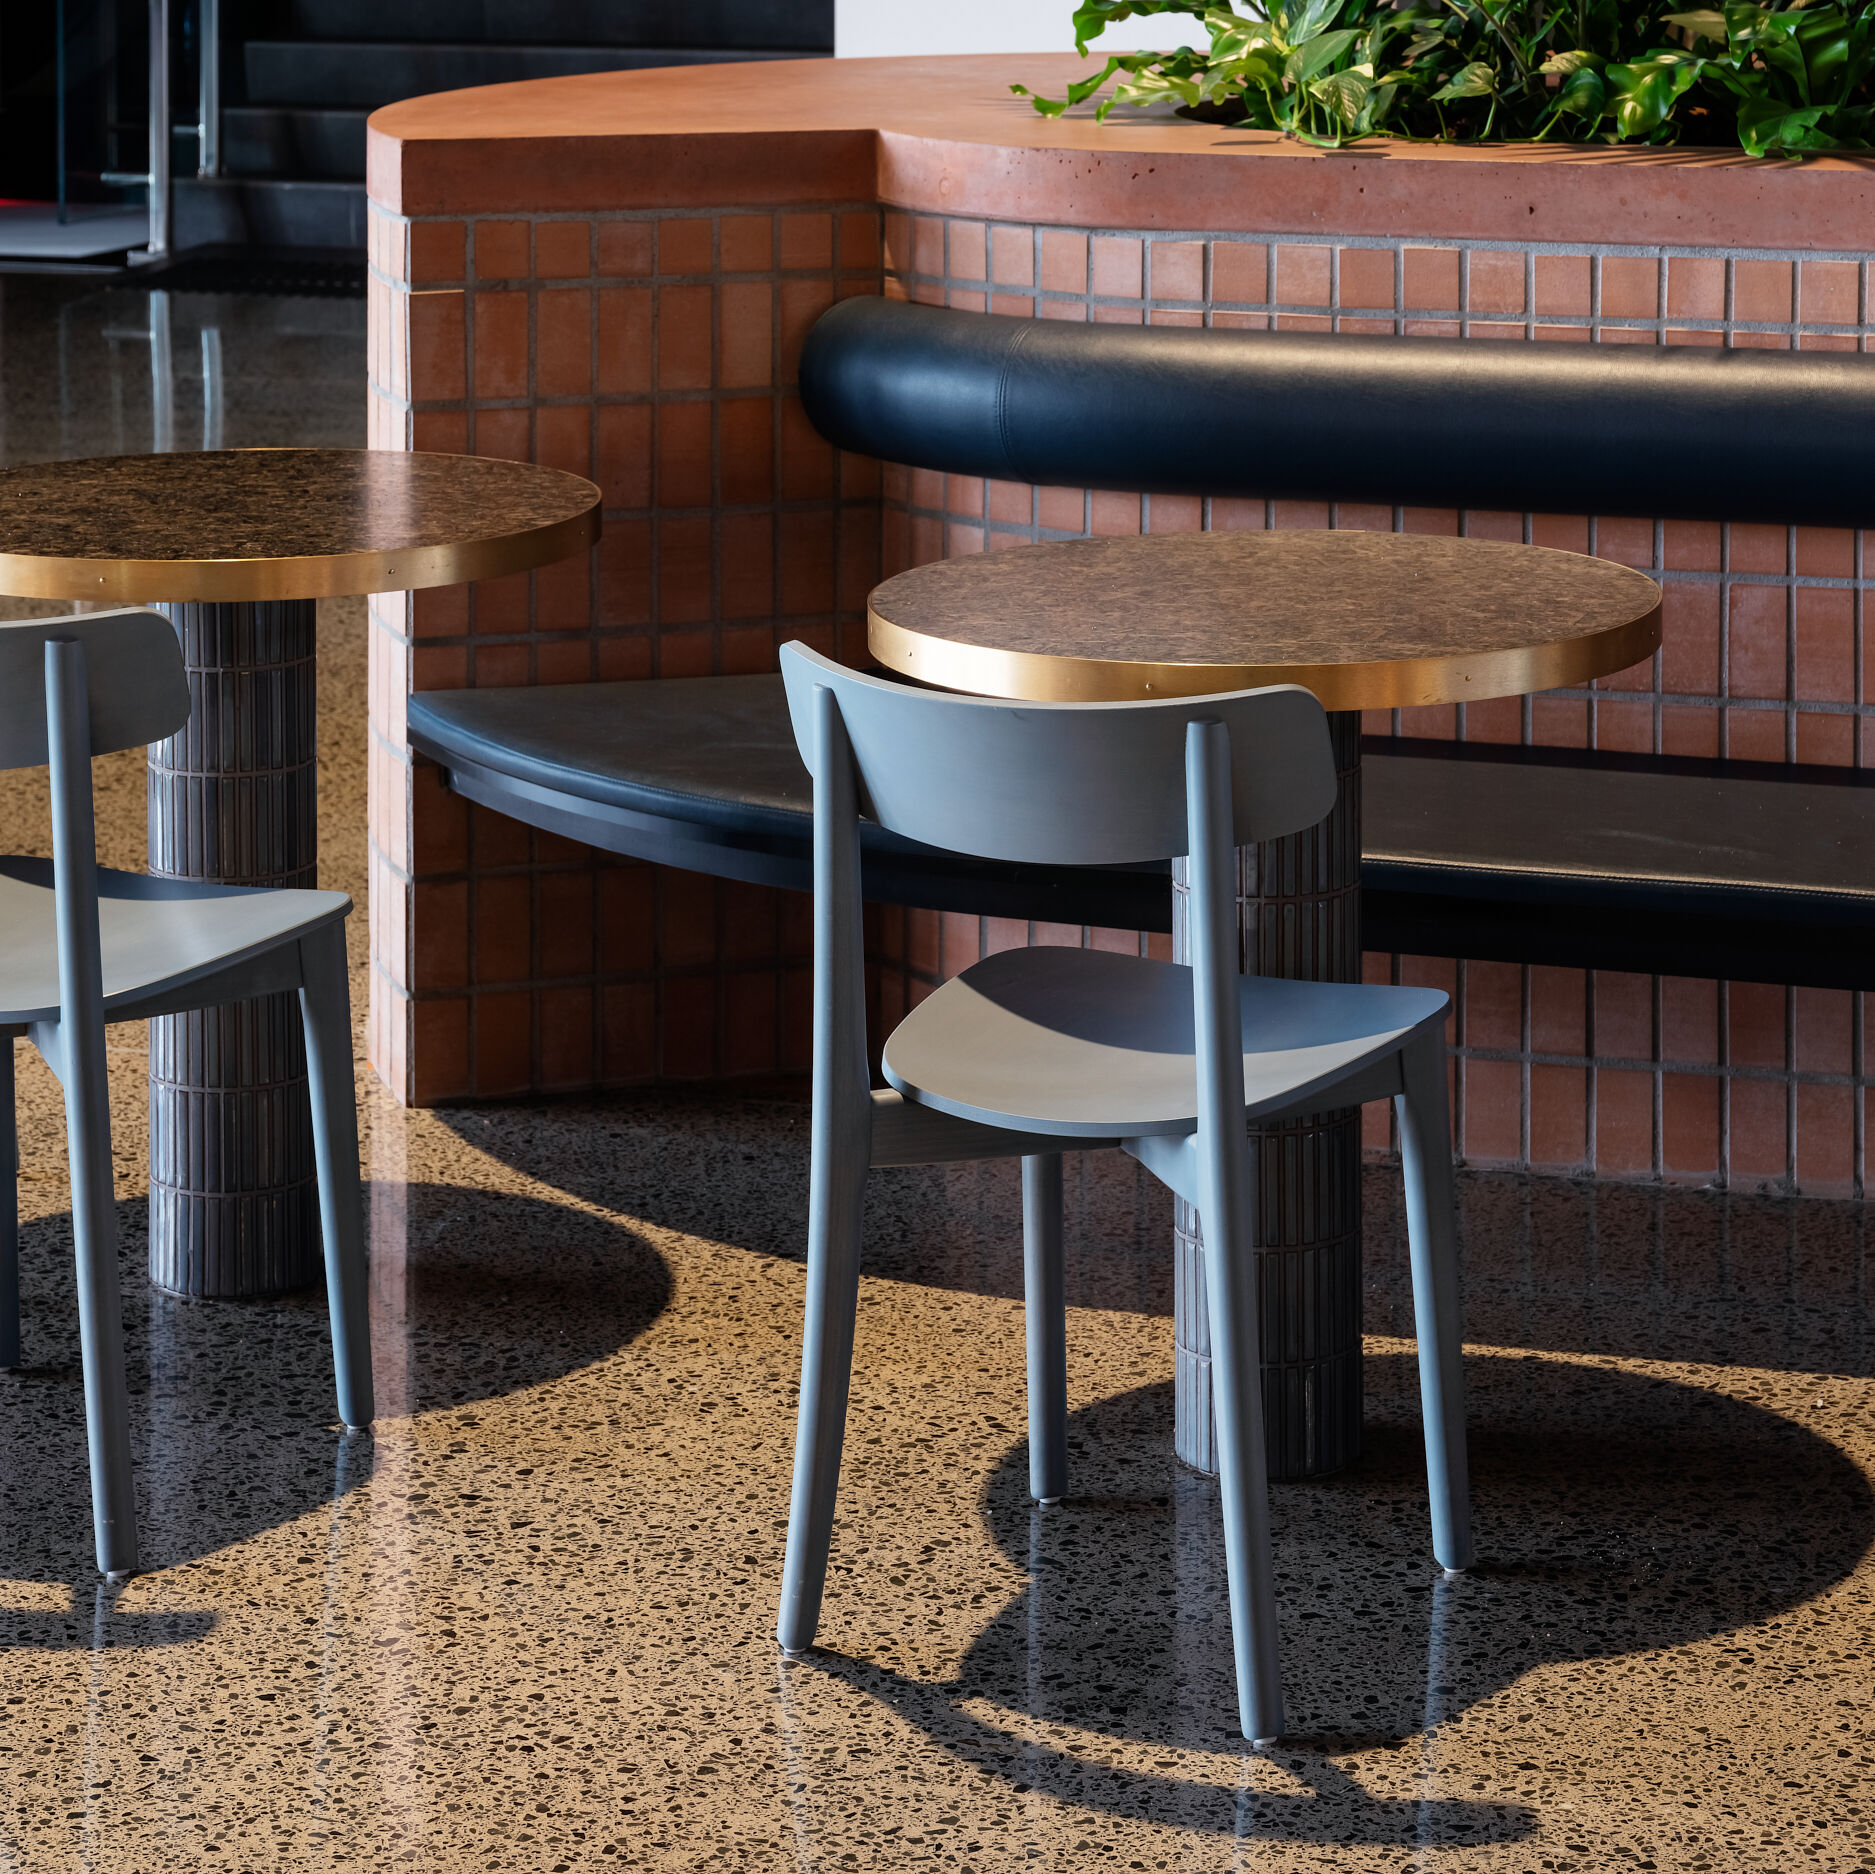 Stained Babar Chairs bring soft tones to a busy foodcourt